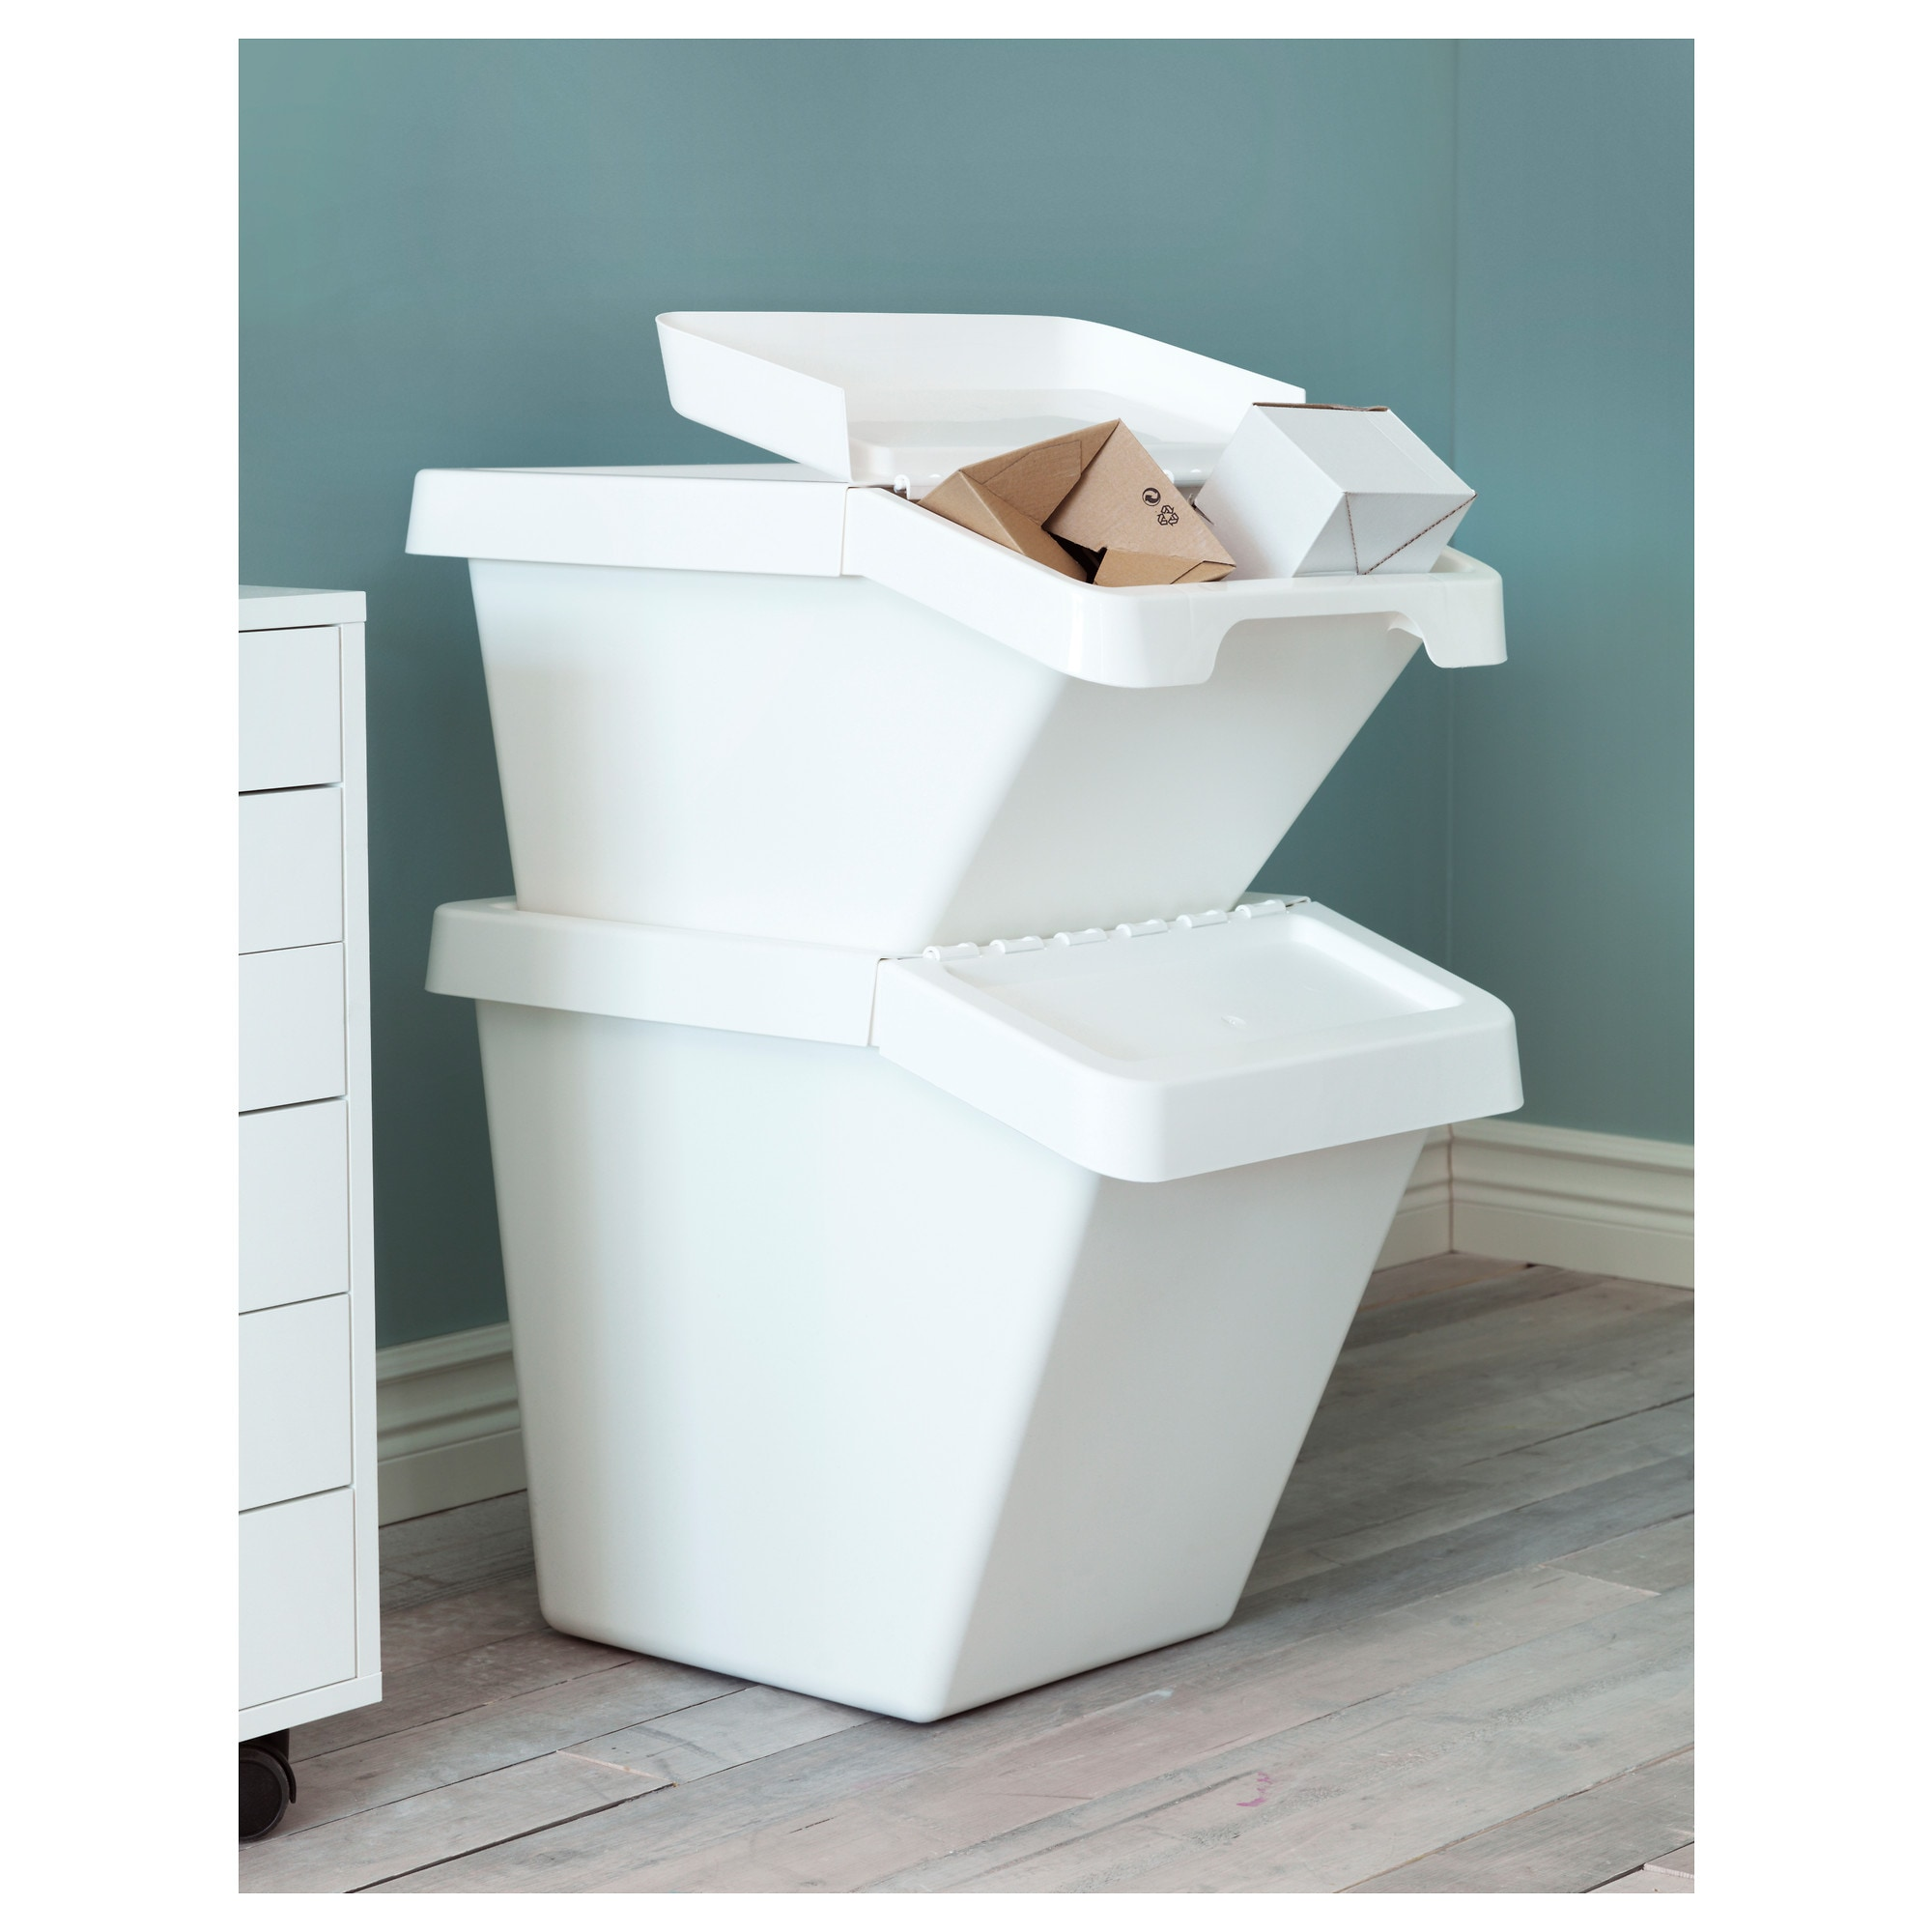 SORTERA Recycling bin with lid - IKEA